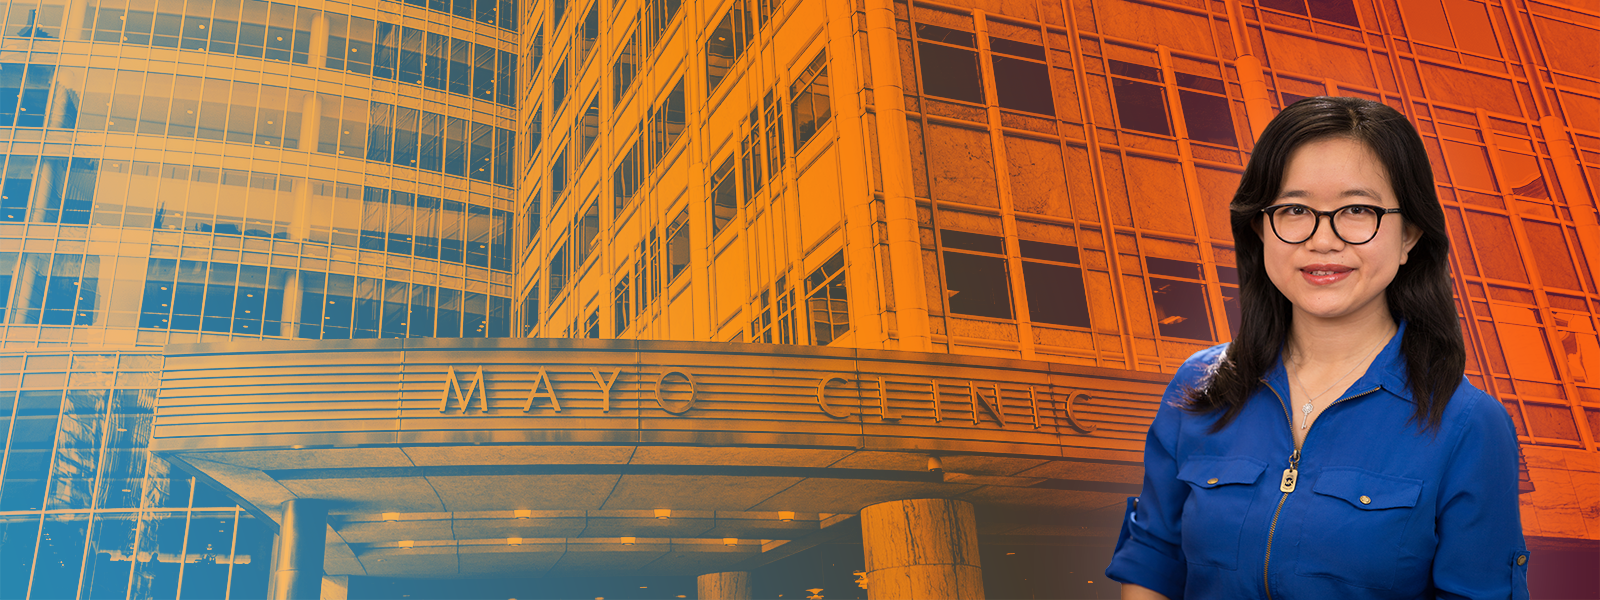 Xiang Zhong profile picture superimposed over the Mayo Clinic